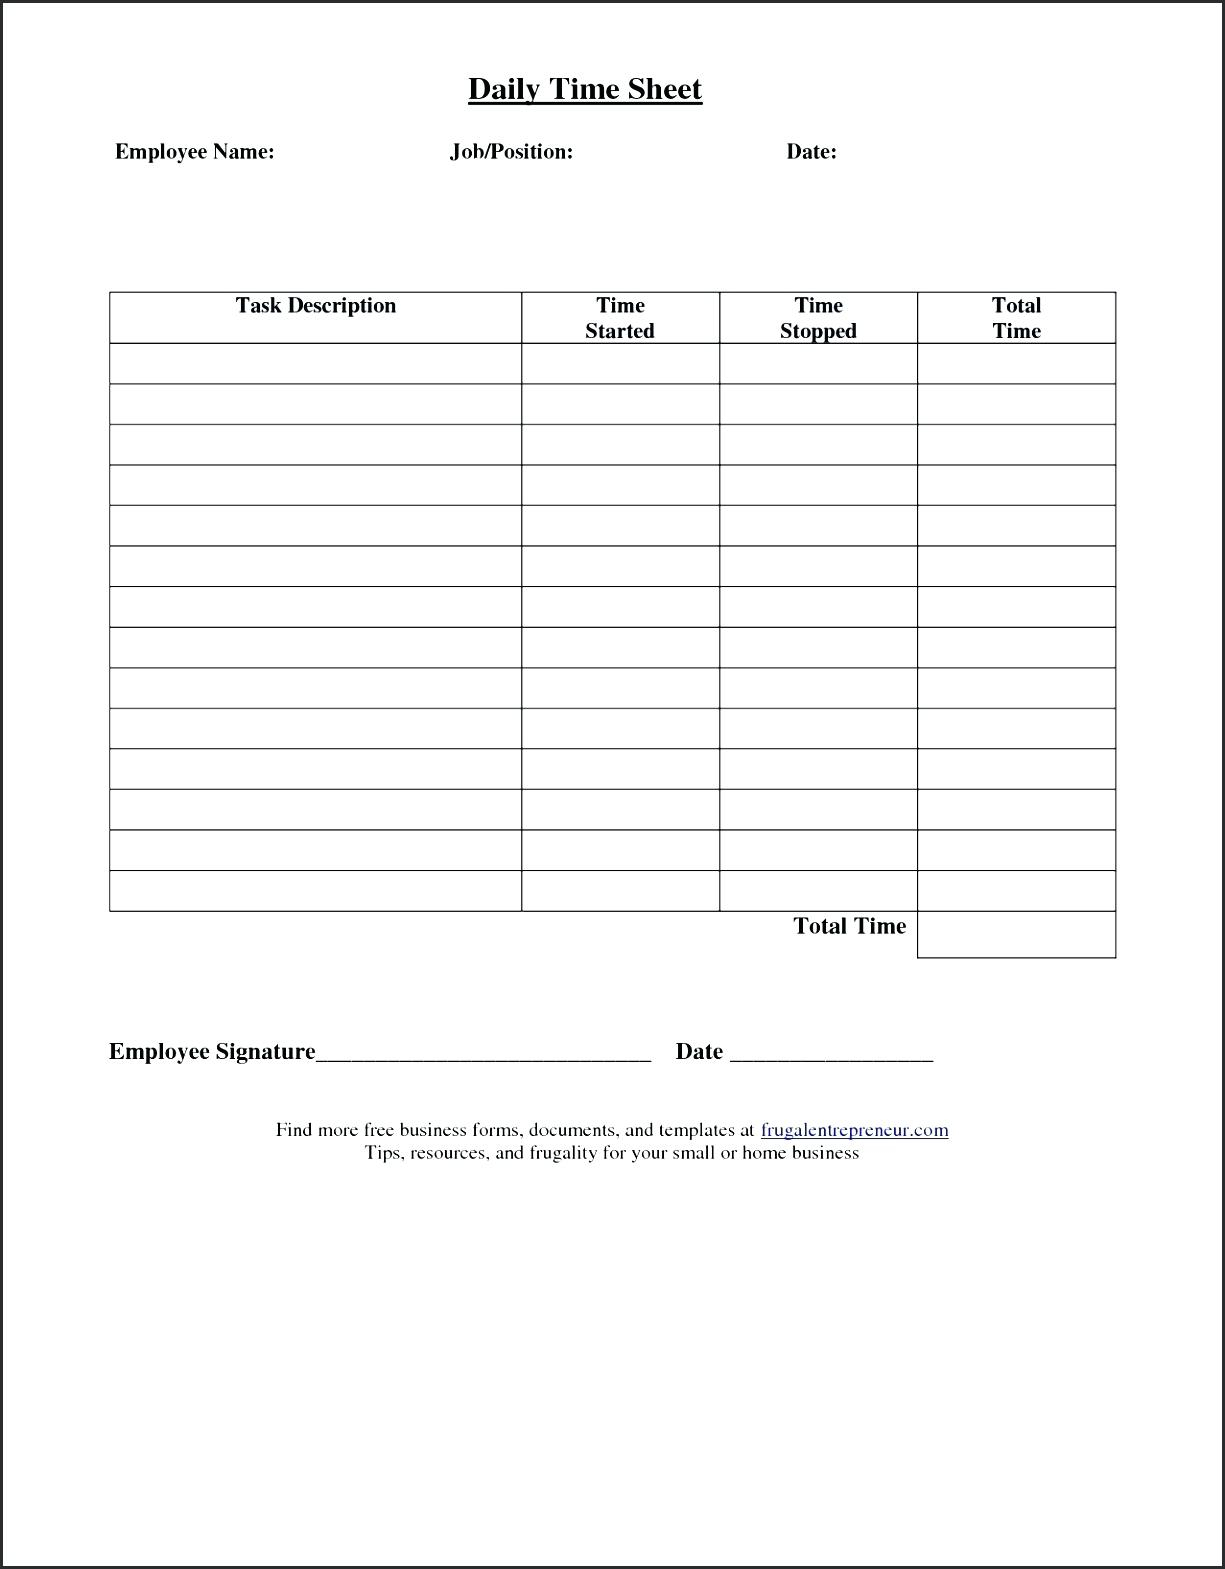 Timesheet Spreadsheet Template Excel Within Sheet Excel Timesheet Template Registration Statement In Weekly